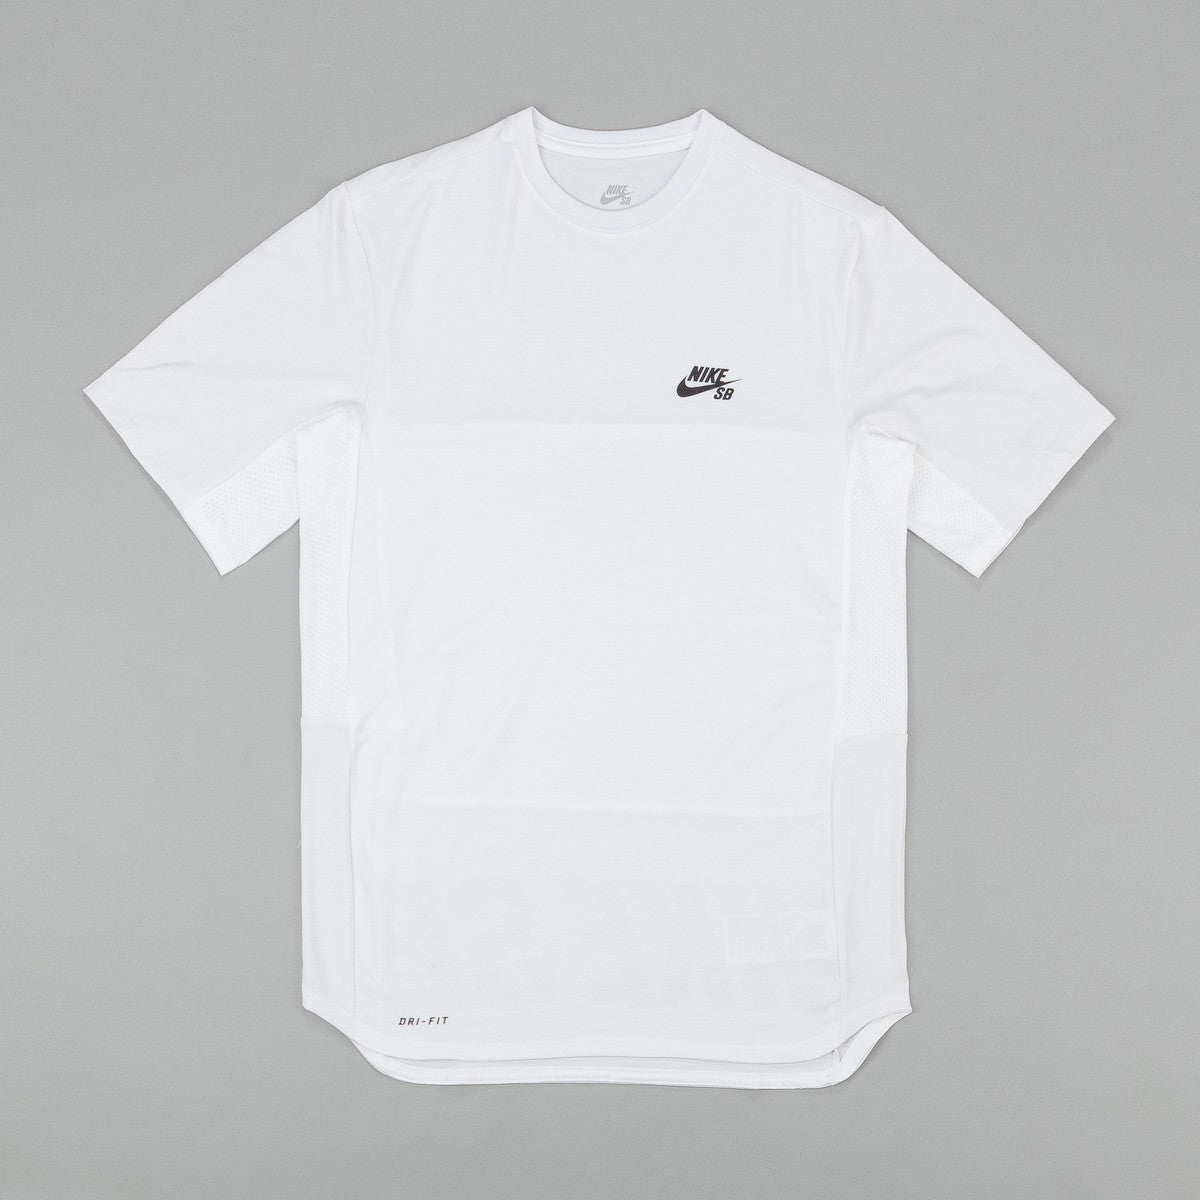 Nike Sb Dri-fit Skyline Cool G T-Shirt  - White / Black